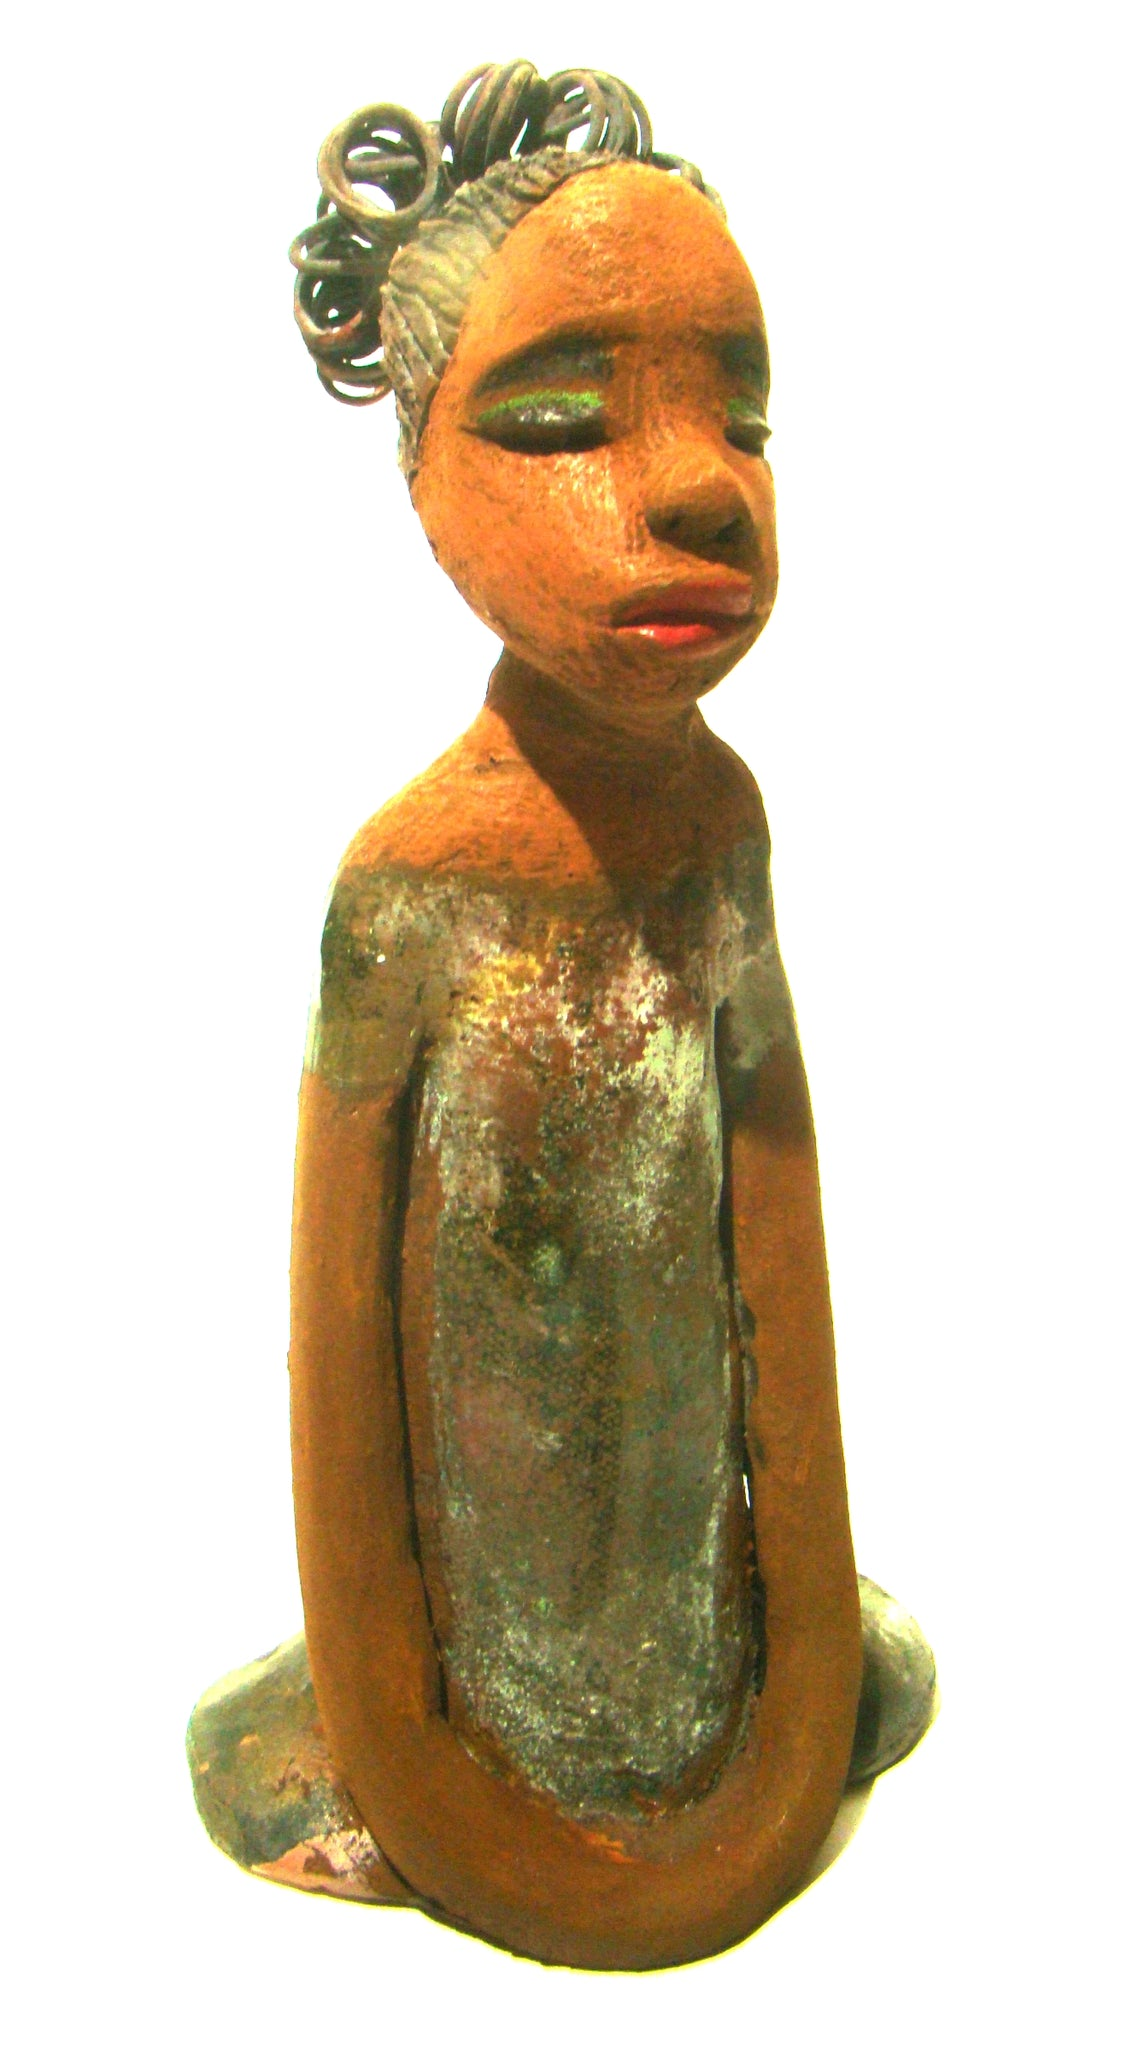 "Erica  stands 10"" x 5"" x 4"" and weighs 1.10 lbs.     Erica has an awesome honey complexion.     Her hair is made of wire and etched clay.     She has a combination of glossy and matte green glazes on her dress.     Erica long loving arms rest gracefully at her side."